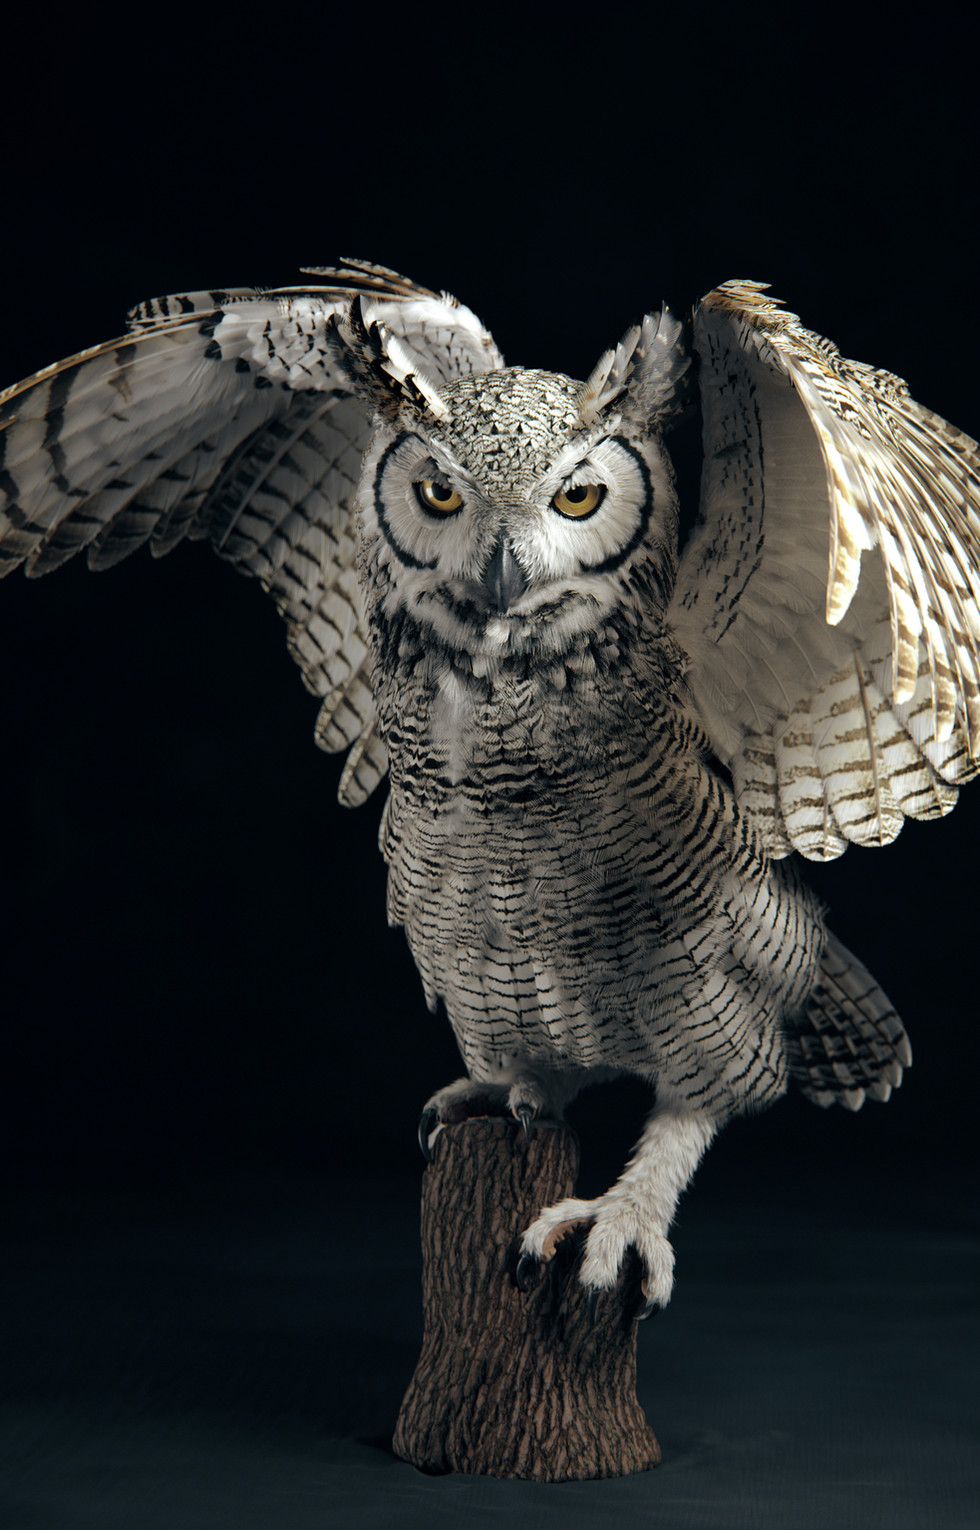 Subarctic Great Horned Owl